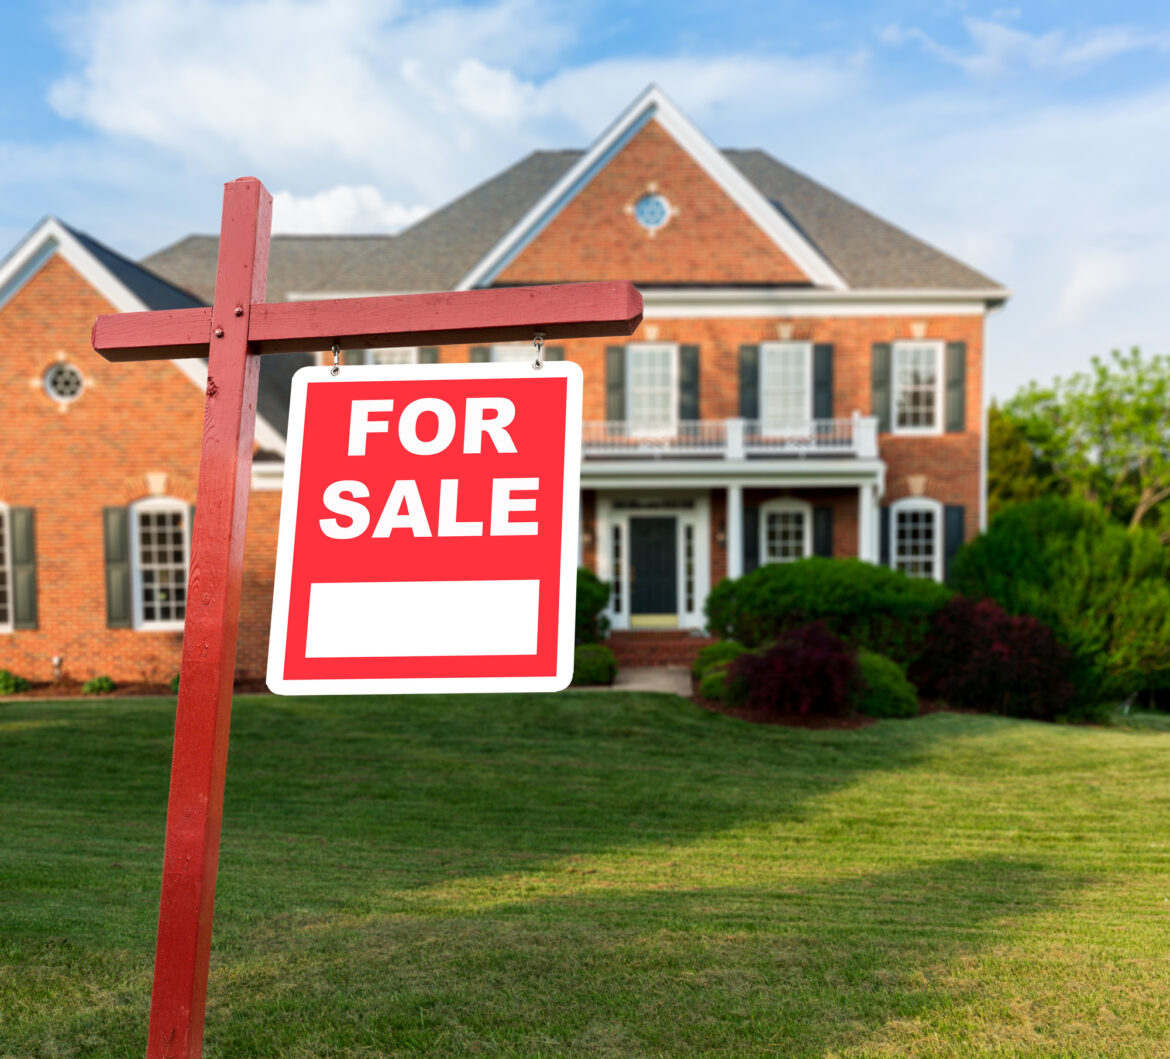 How to Buy a House in a Seller's Market